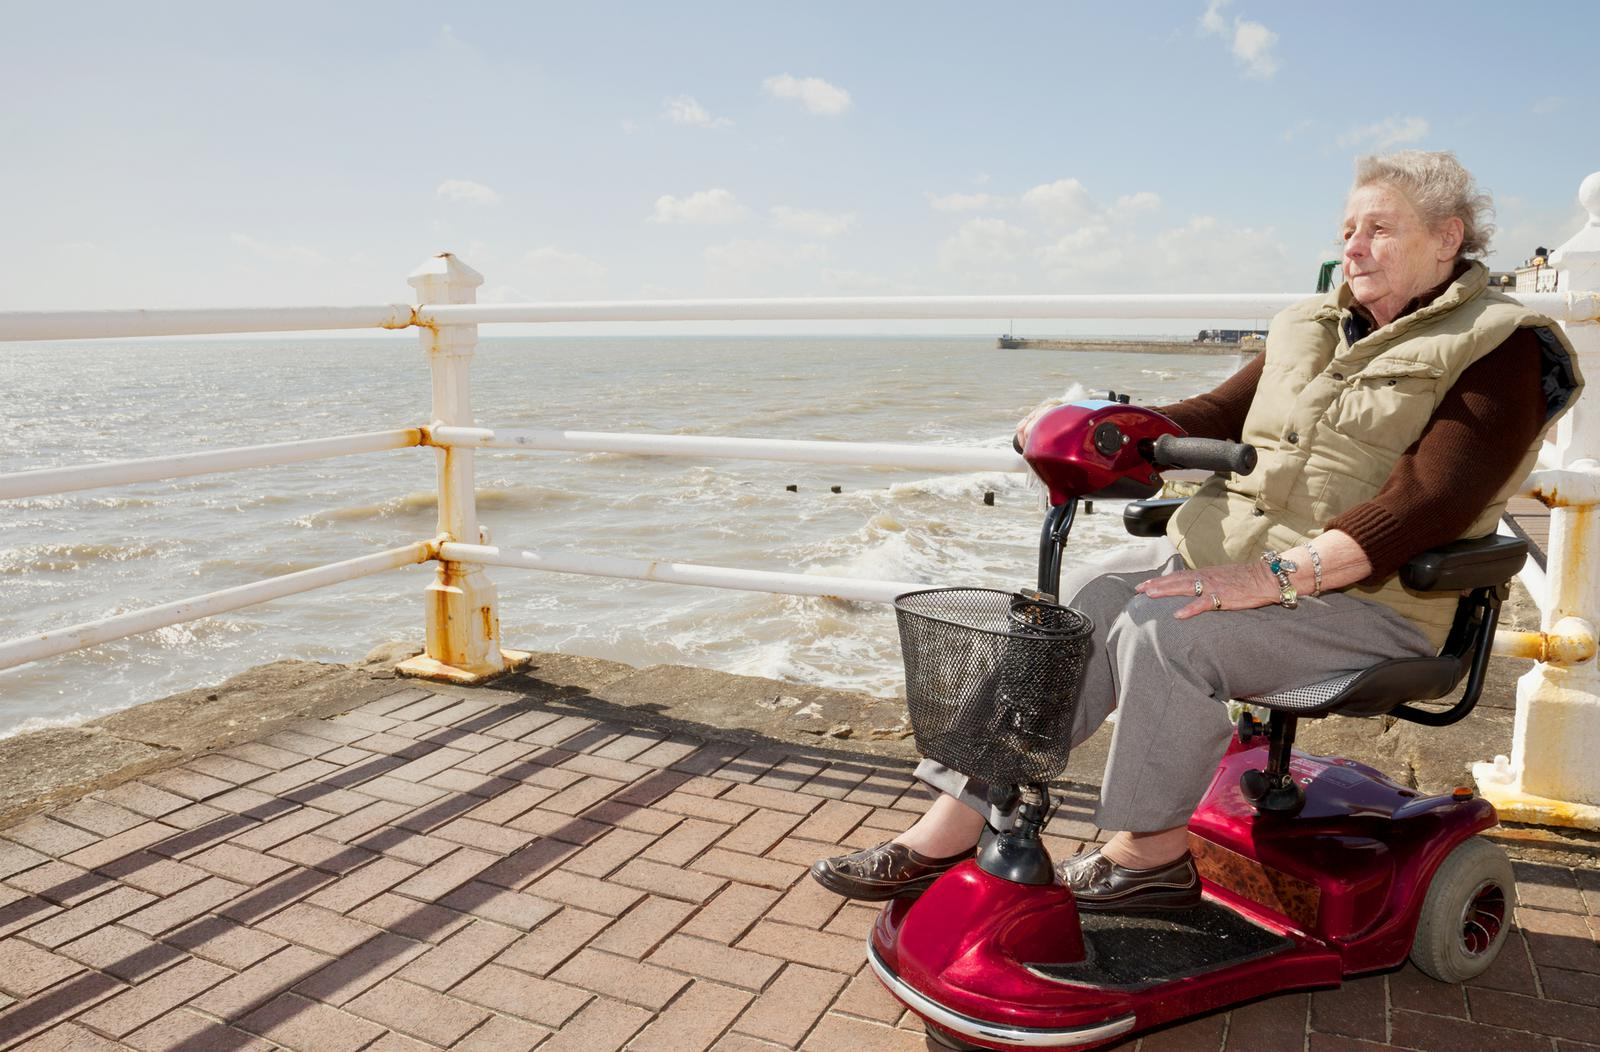 Woman using her mobility scooter on a dock near the ocean